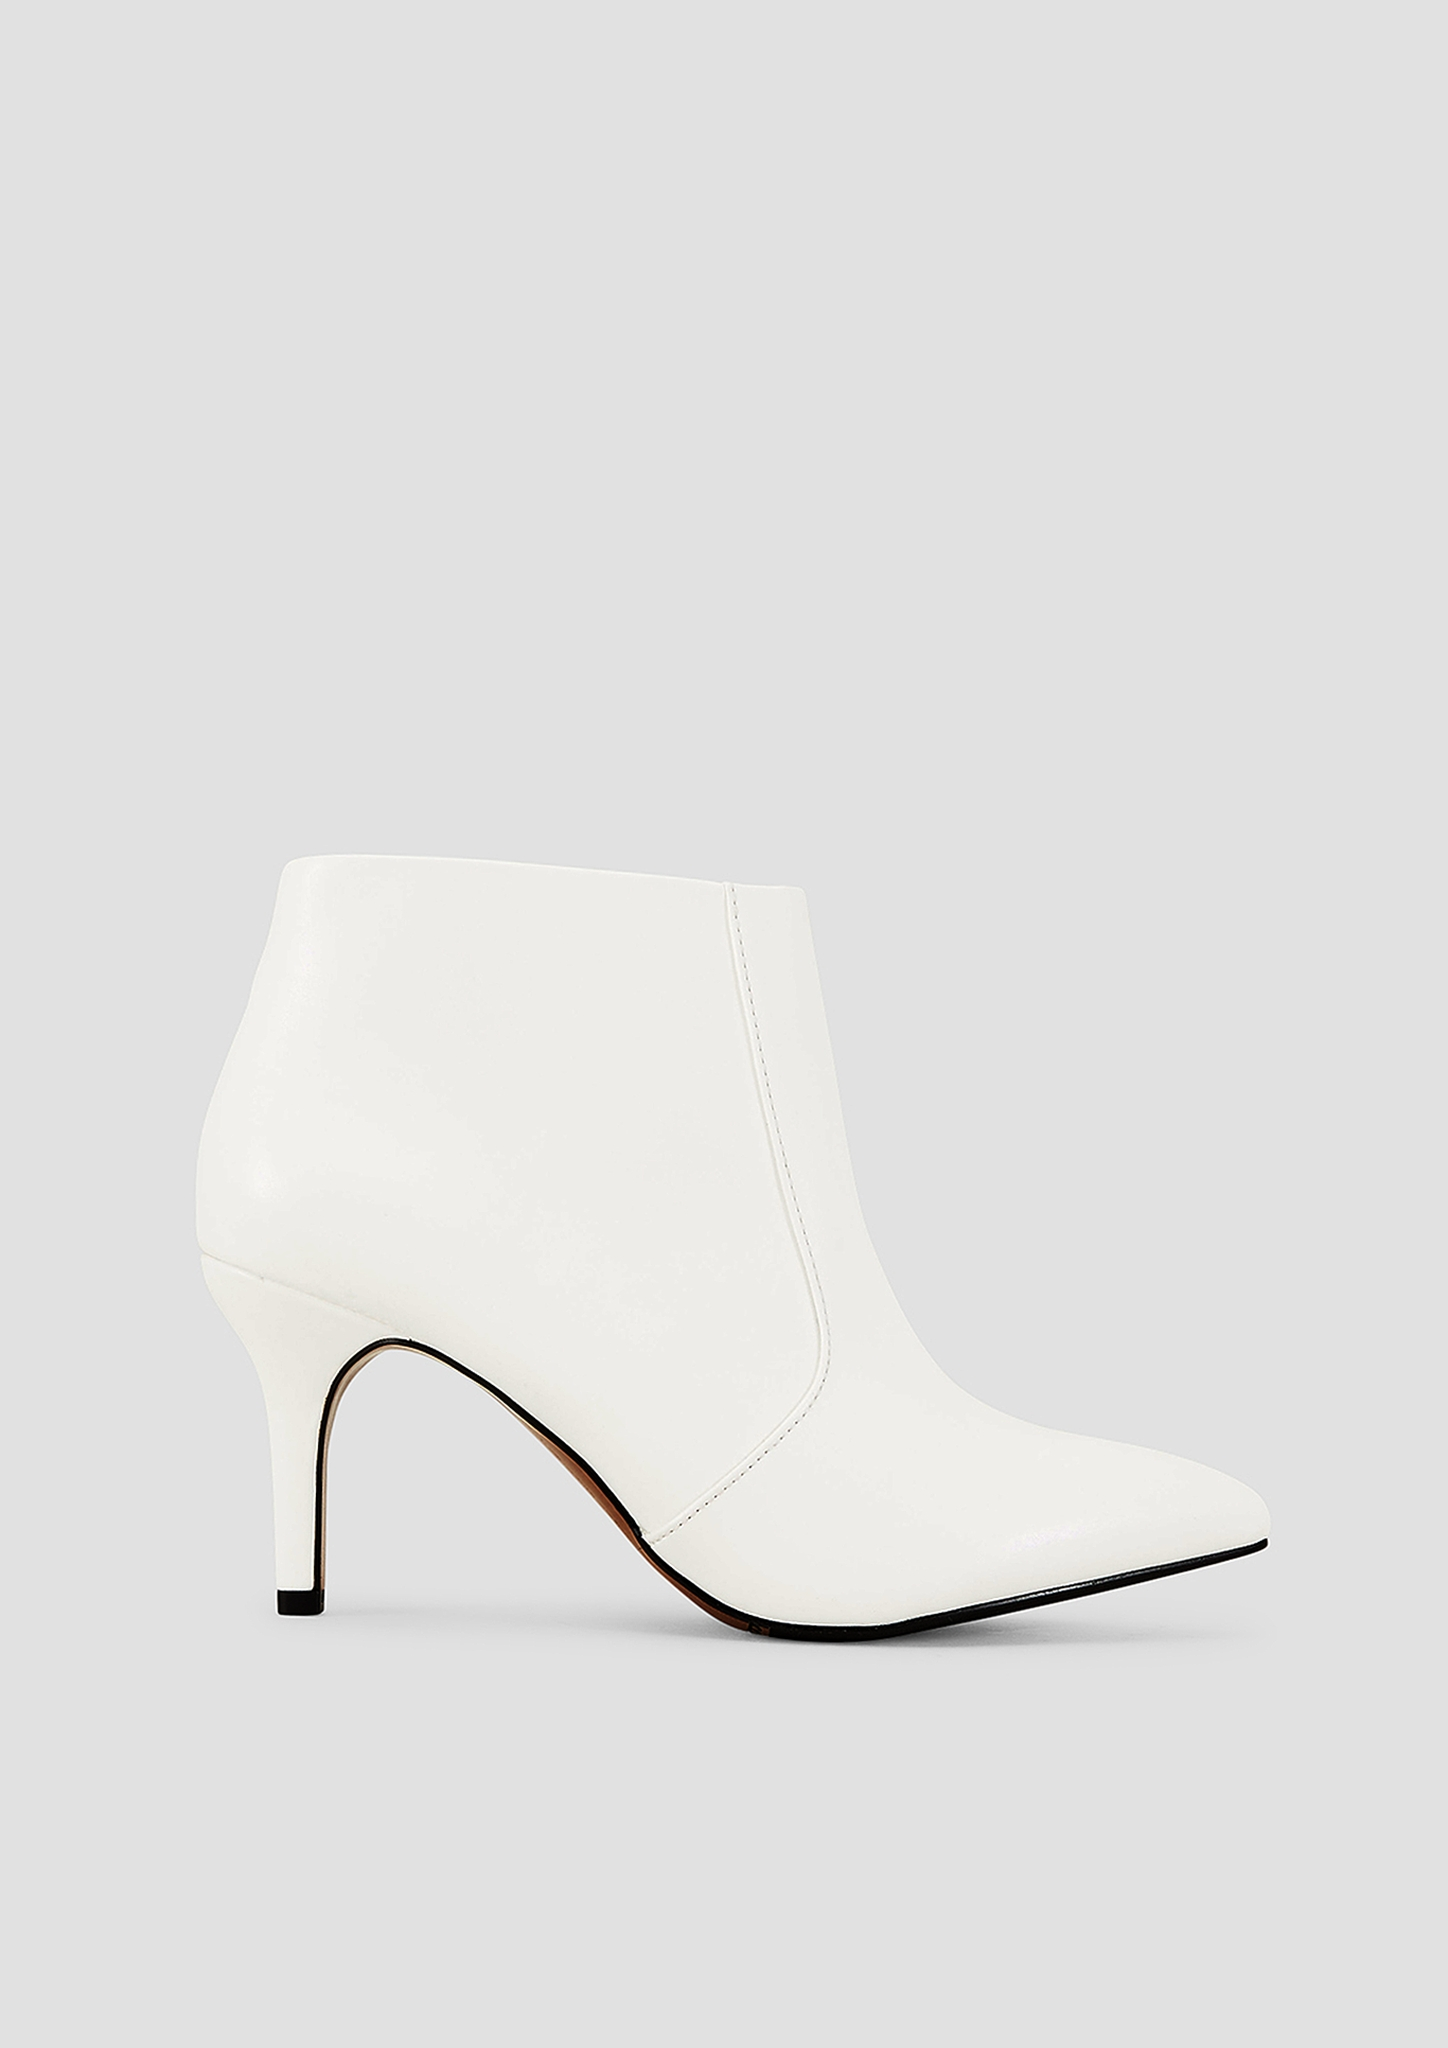 Ankle Boots | Schuhe > Stiefeletten > Ankleboots | Weiß | Obermaterial aus synthetik| futter aus textil und synthetik| decksohle aus textil| laufsohle aus synthetik| | s.Oliver